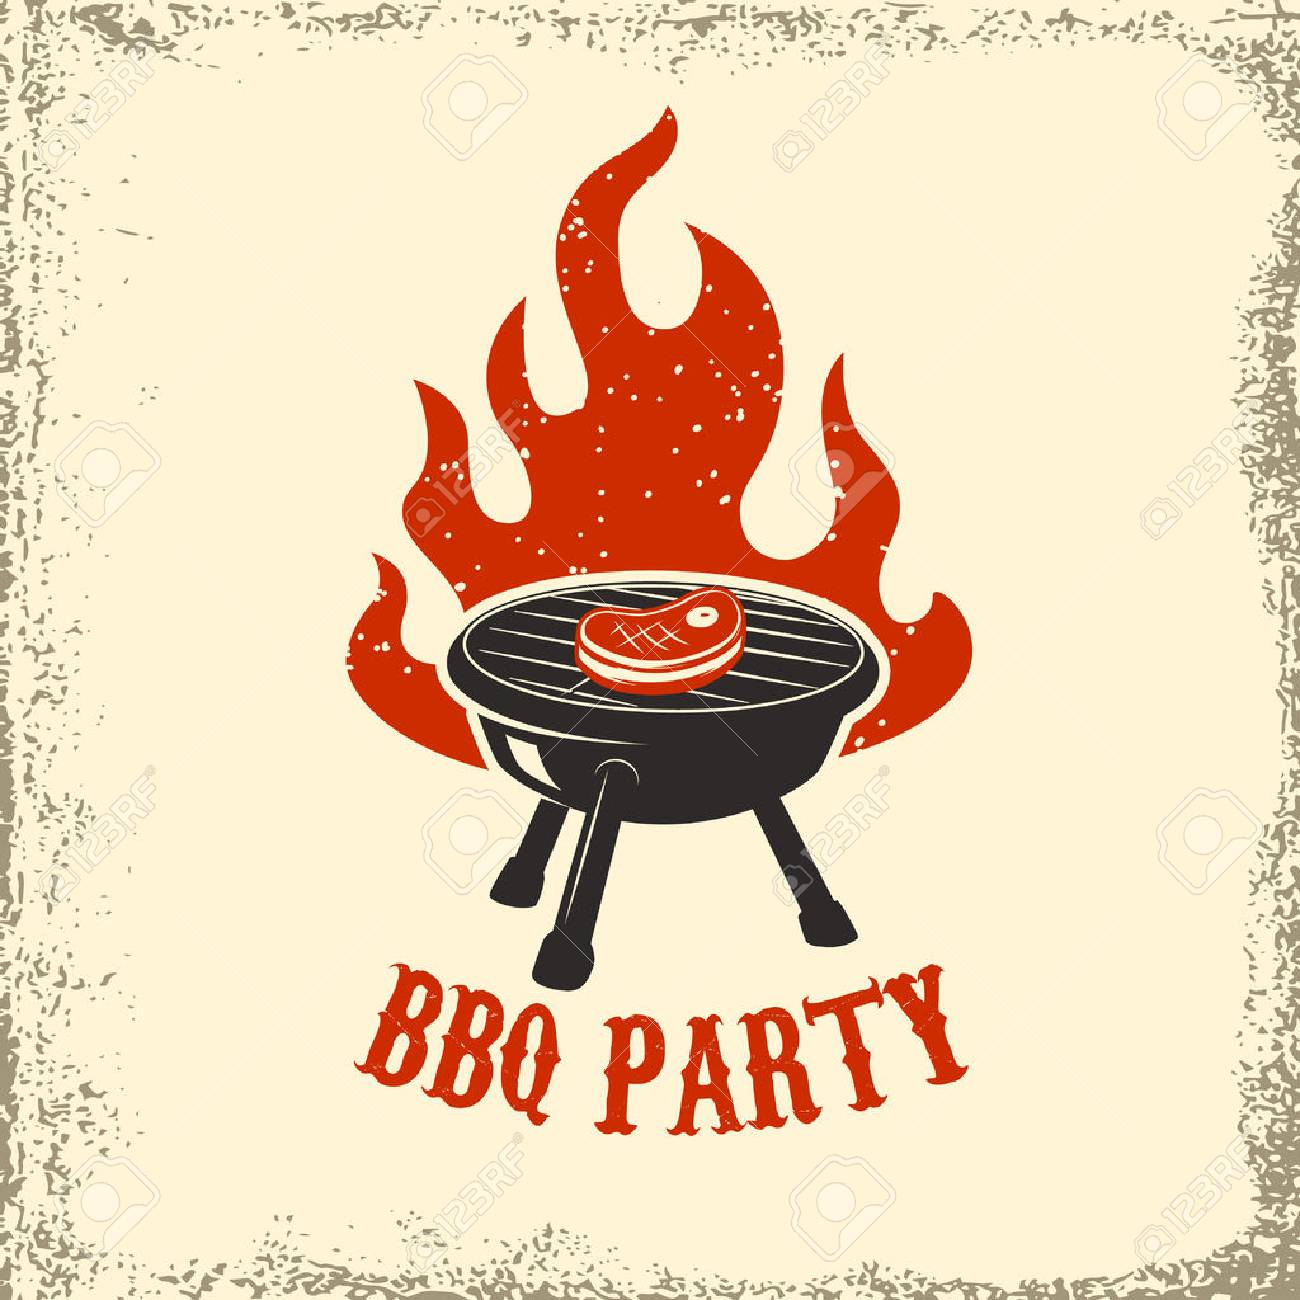 BBQ party. Grill with fire on grunge background. Design element for poster, restaurant menu. Vector illustration. - 74864261